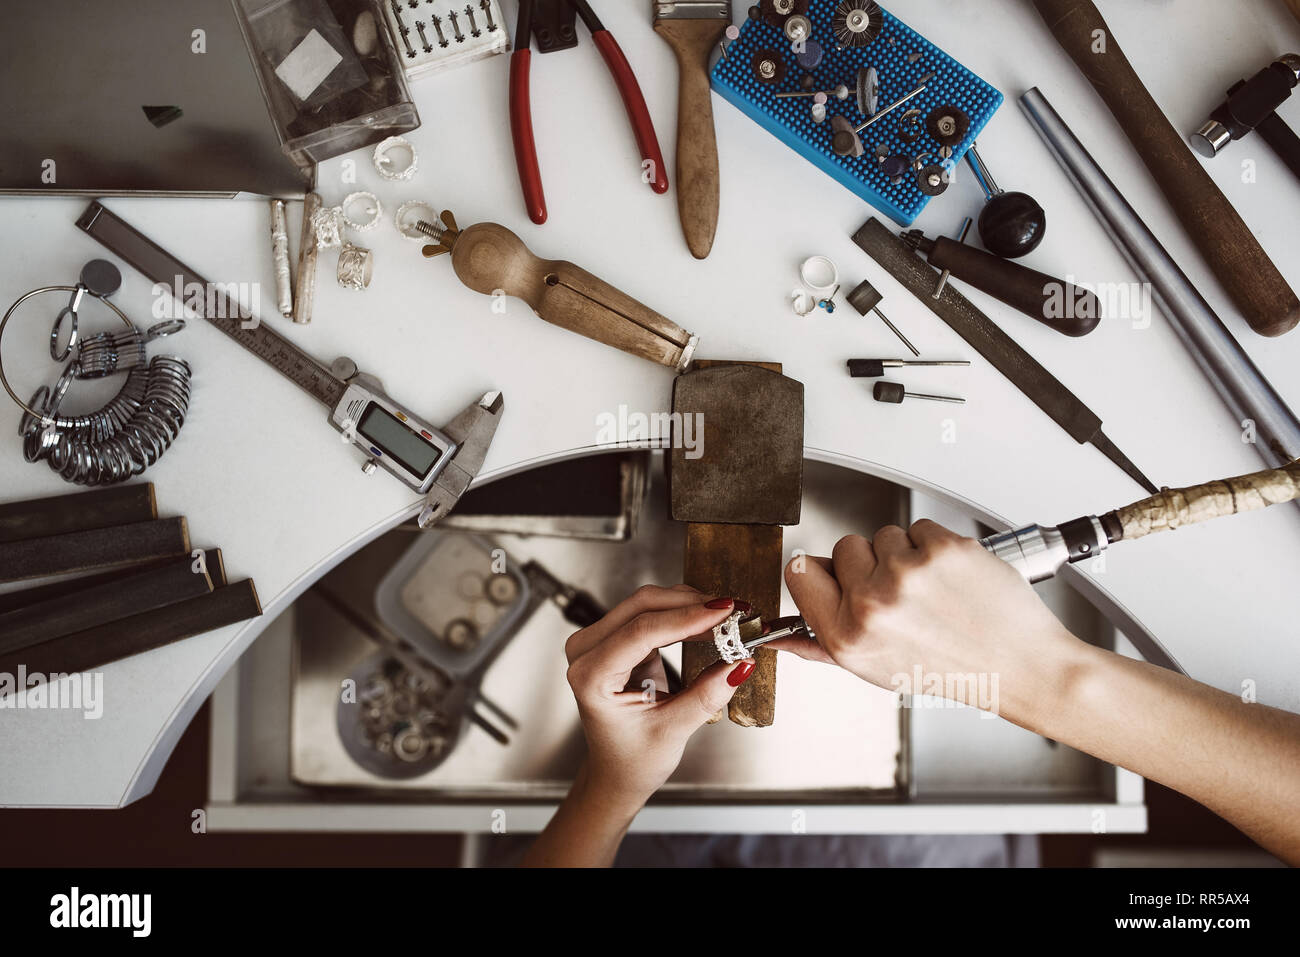 Creative chaos. Top view of jeweler's workbench with different tools for making jewelry. Female jeweler's hands polishing a silver ring with grinding  Stock Photo